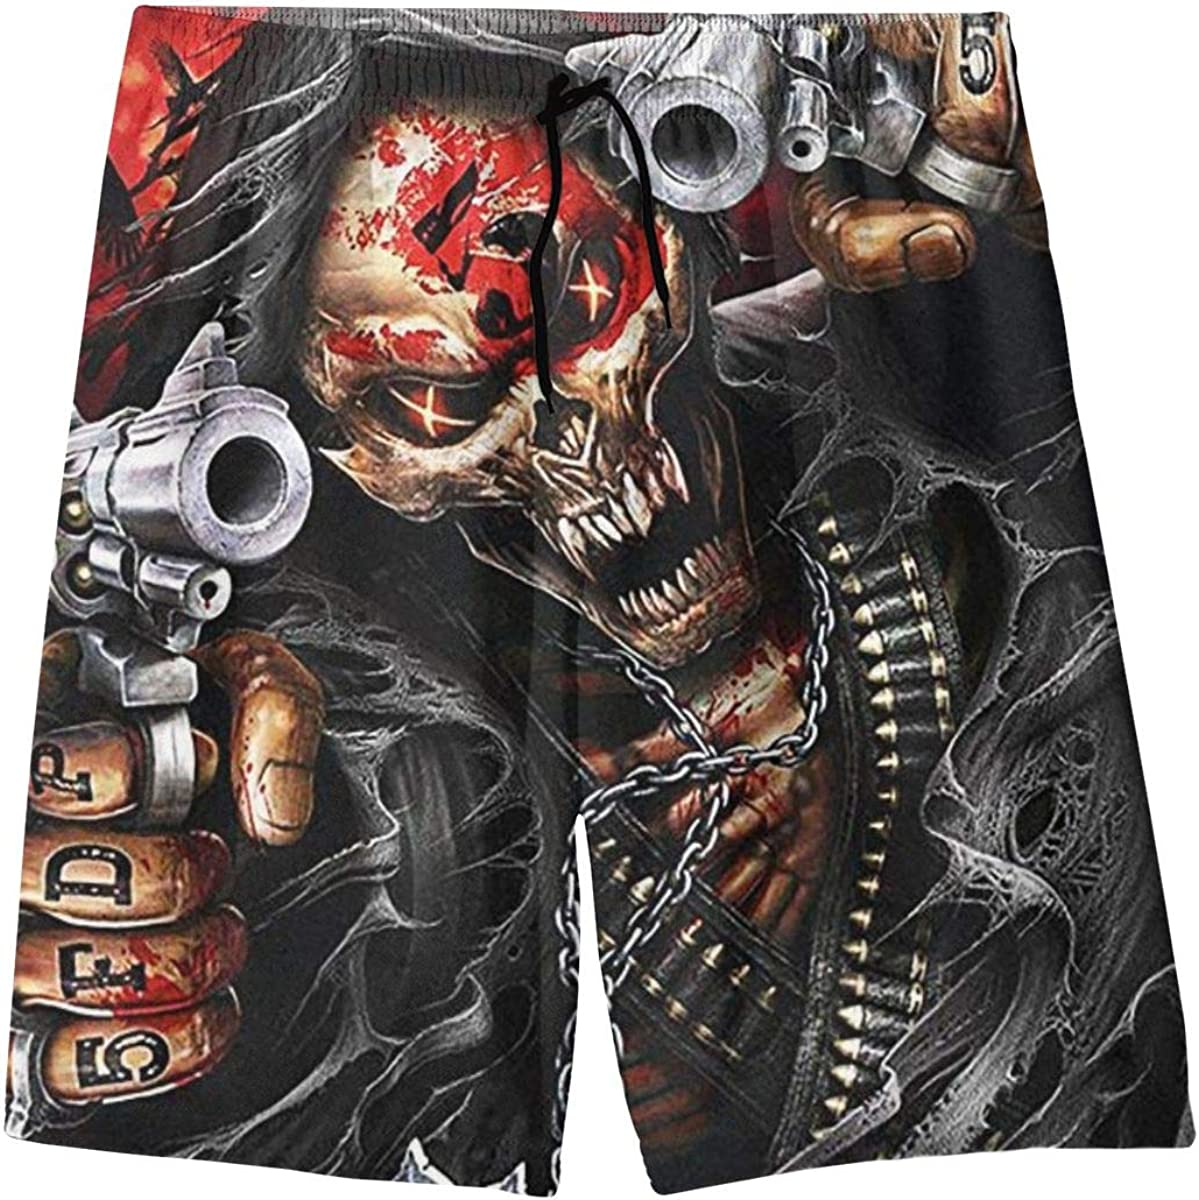 Five Finger Death Punch Mens Swim Trunks Beach Board Shorts with Pockets Cool Novelty Bathing Suits for Teen Boys White